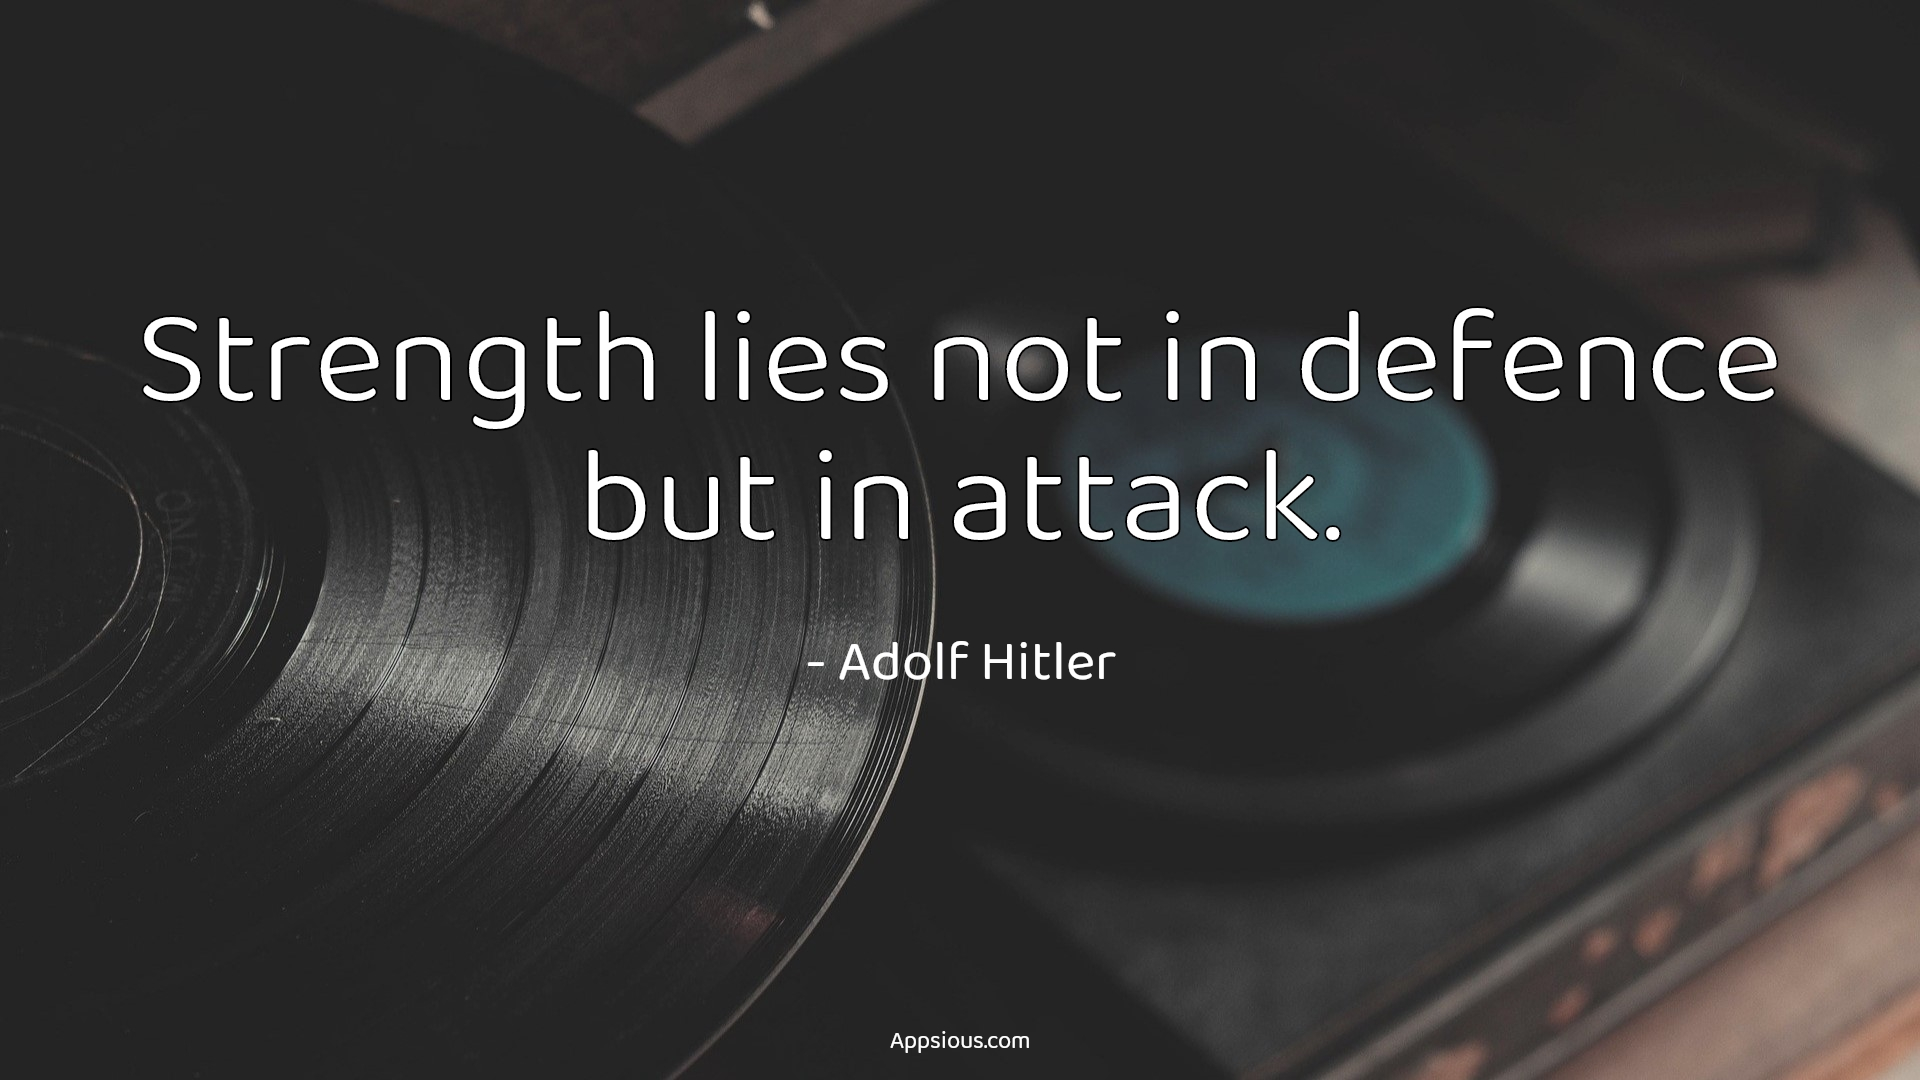 Strength lies not in defence but in attack.